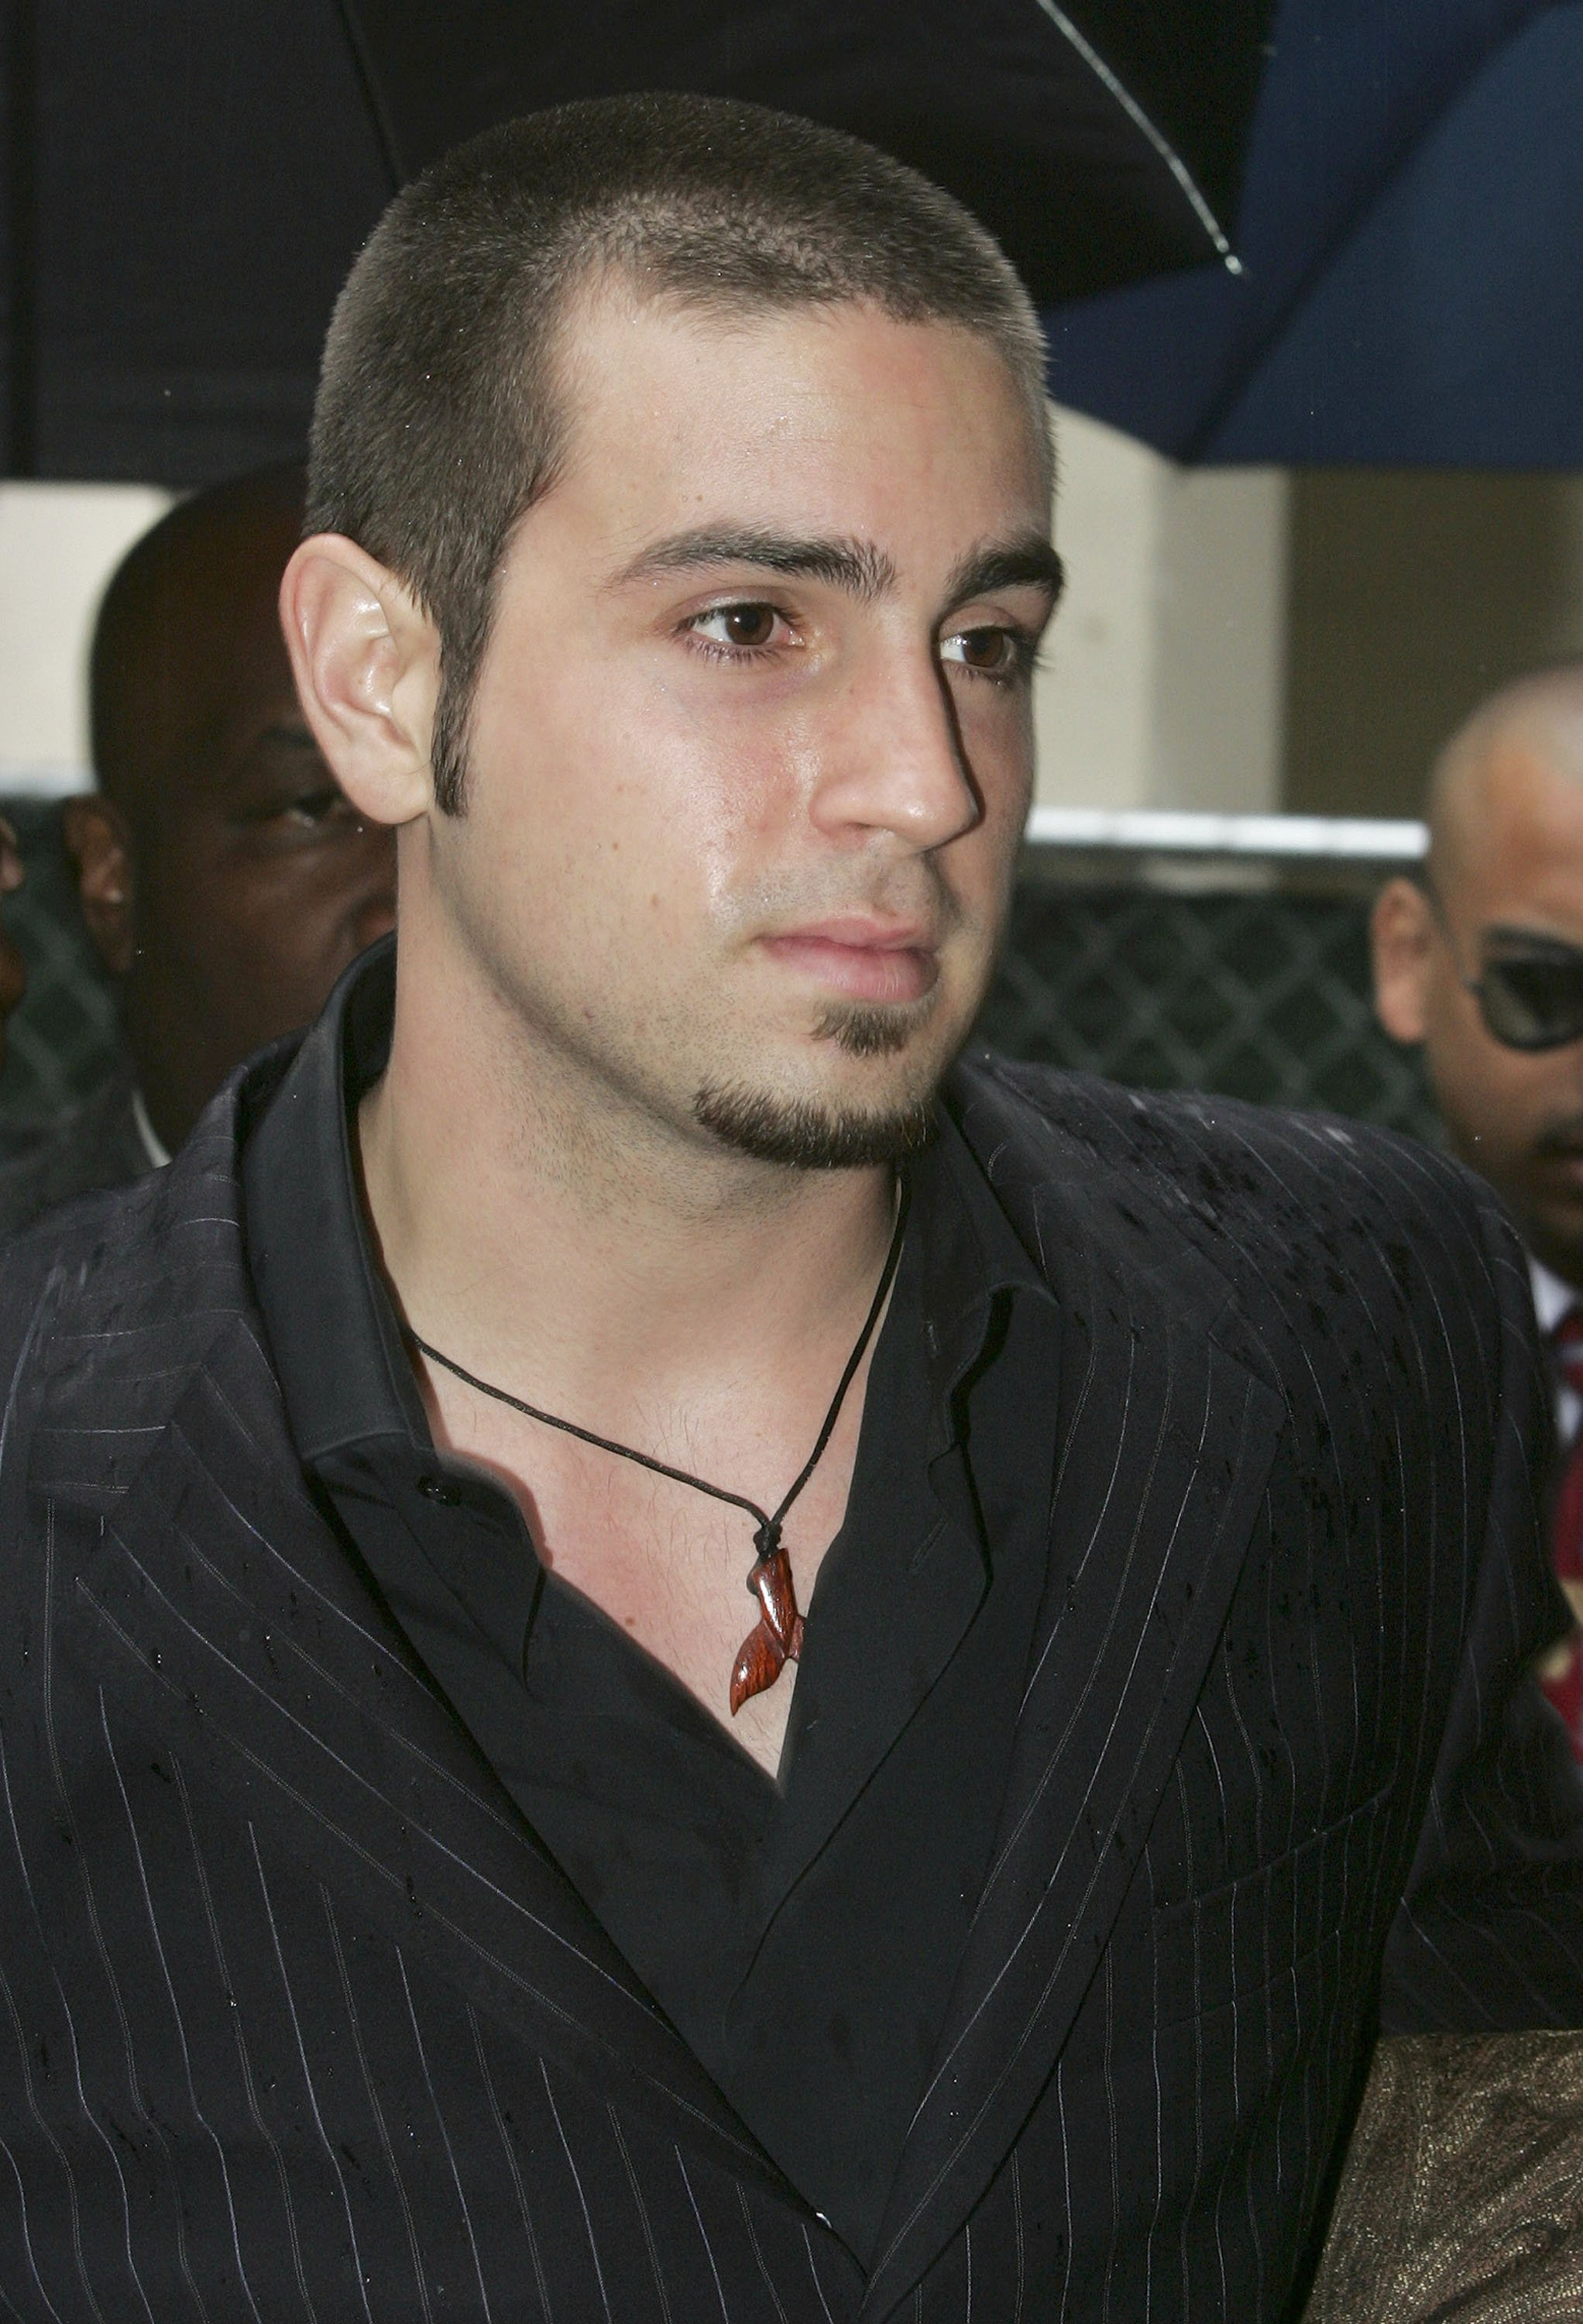 Wade Robson at the Santa Barbara County Superior Court during Michael Jackson's child molestation trial in May 2005. | Photo: Getty Images.